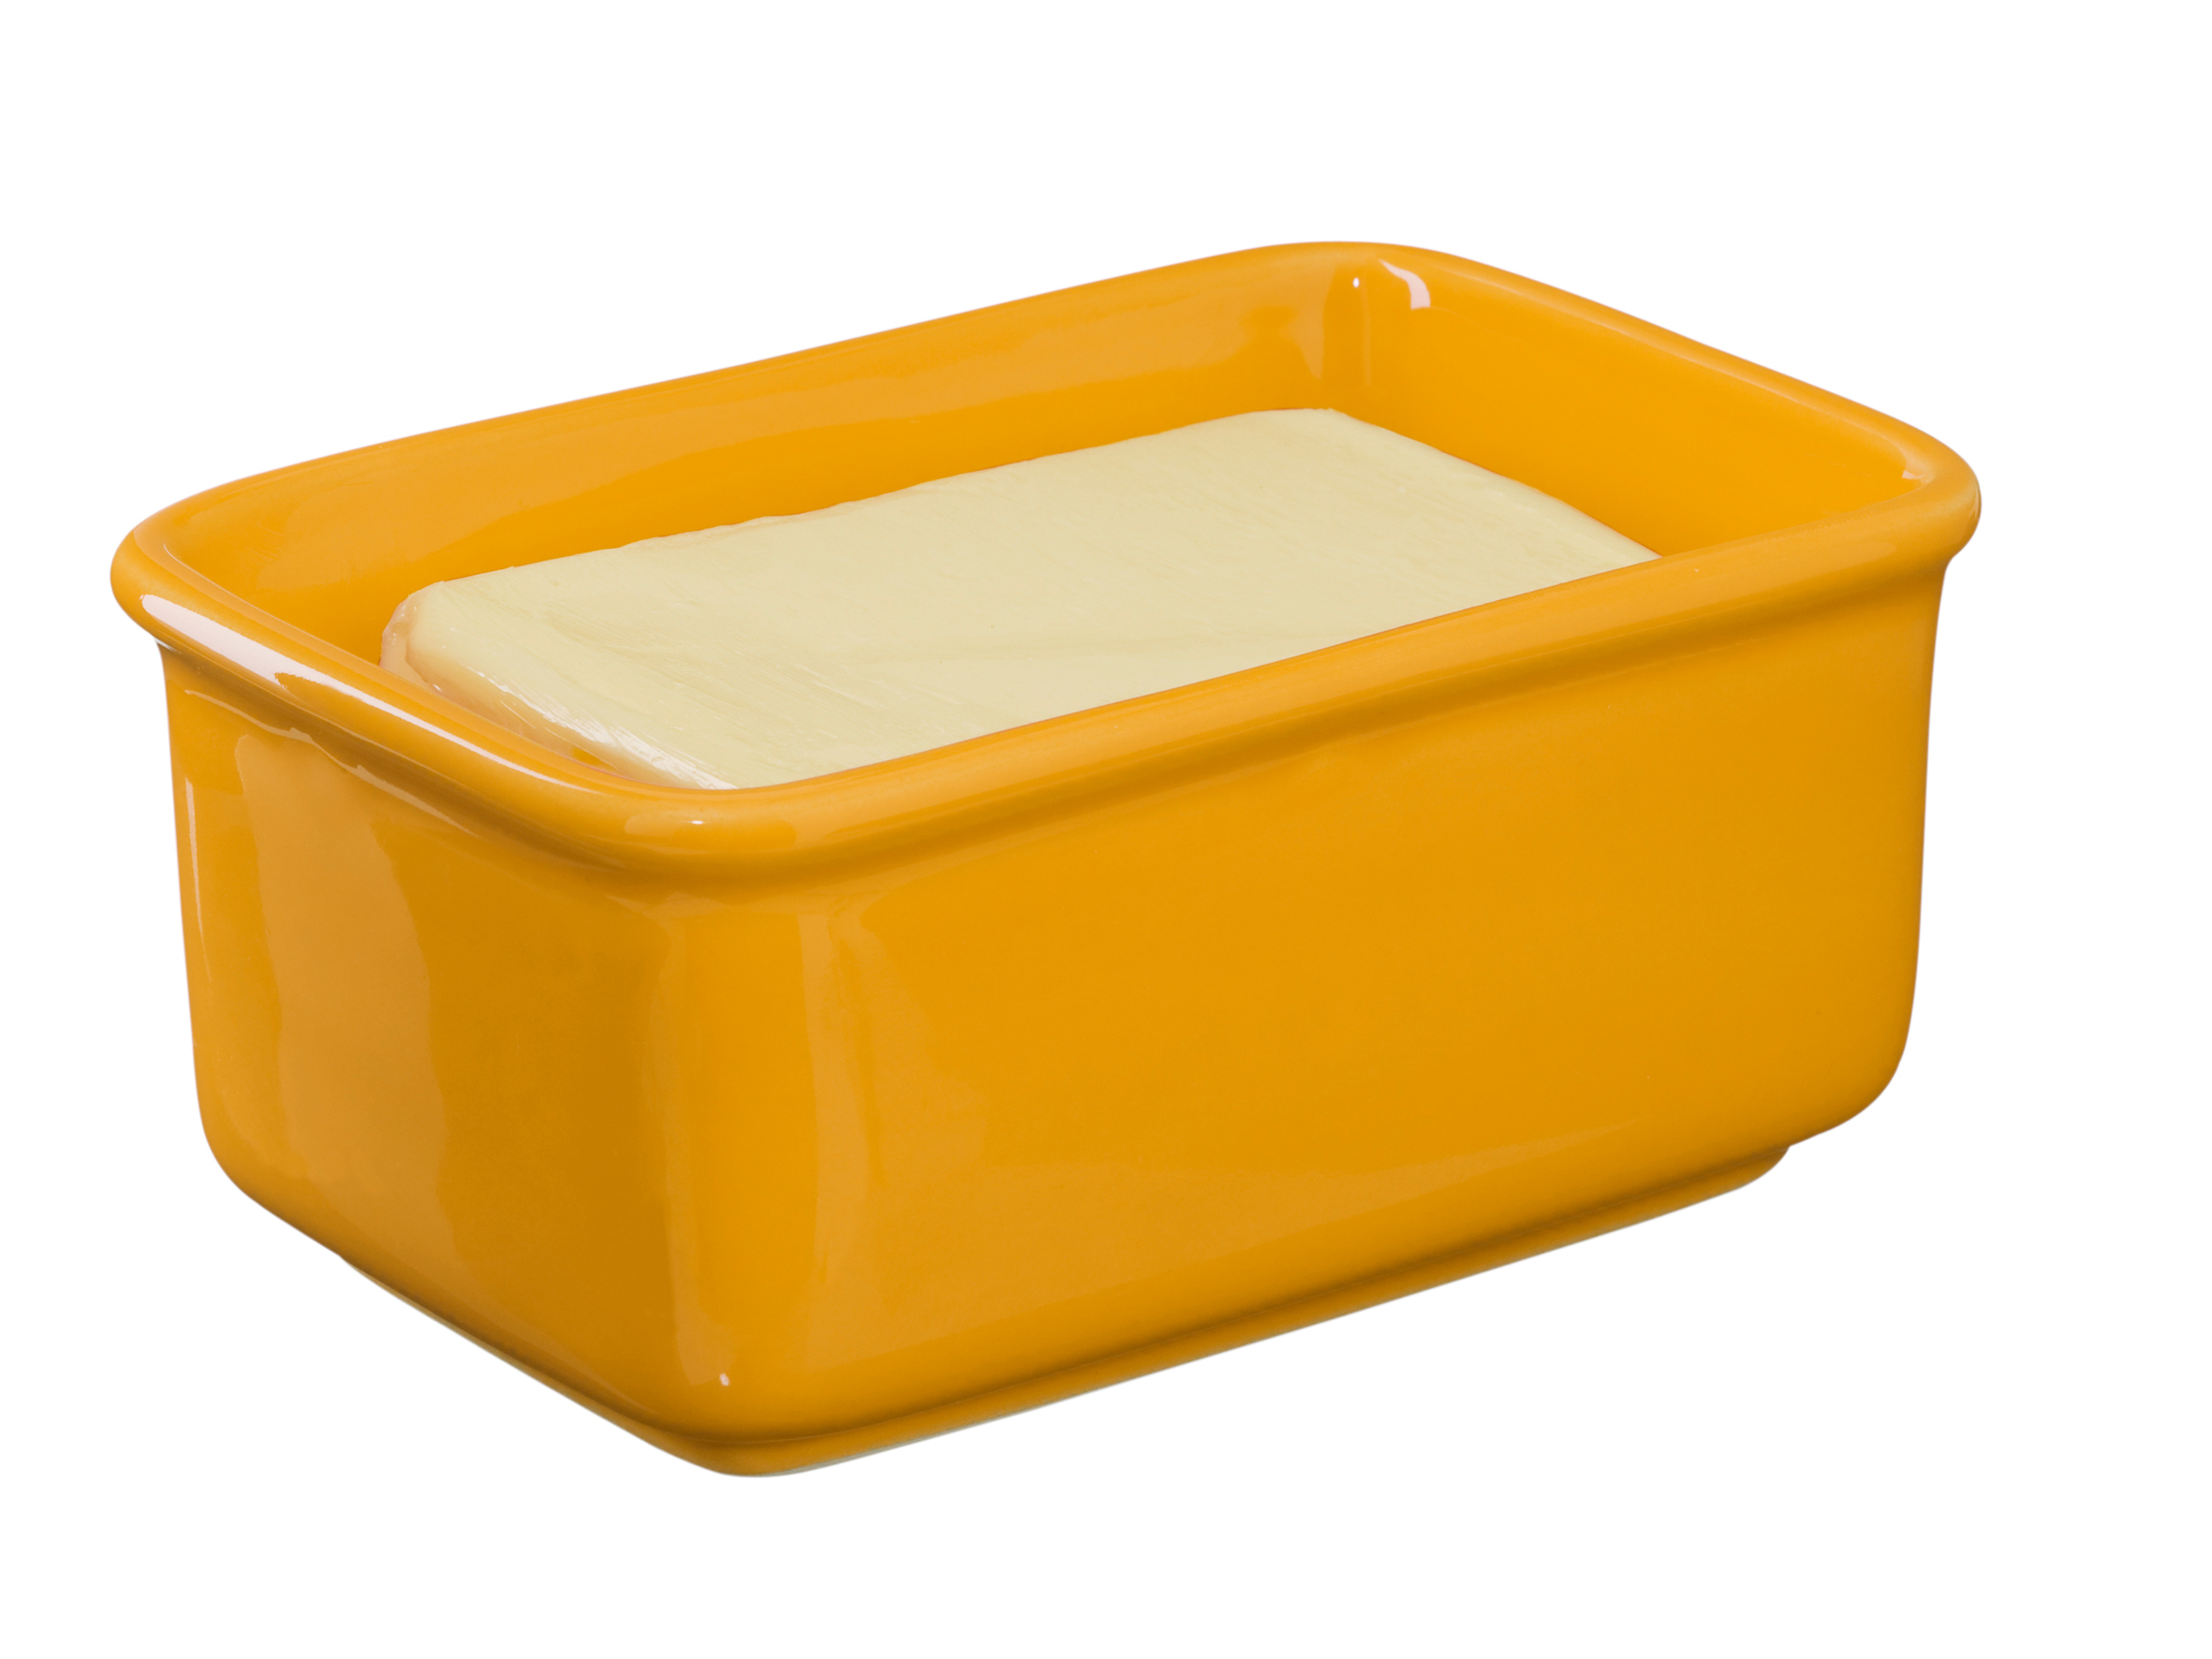 Butter Dish - Is that Plastic? - Yellow (with butter)